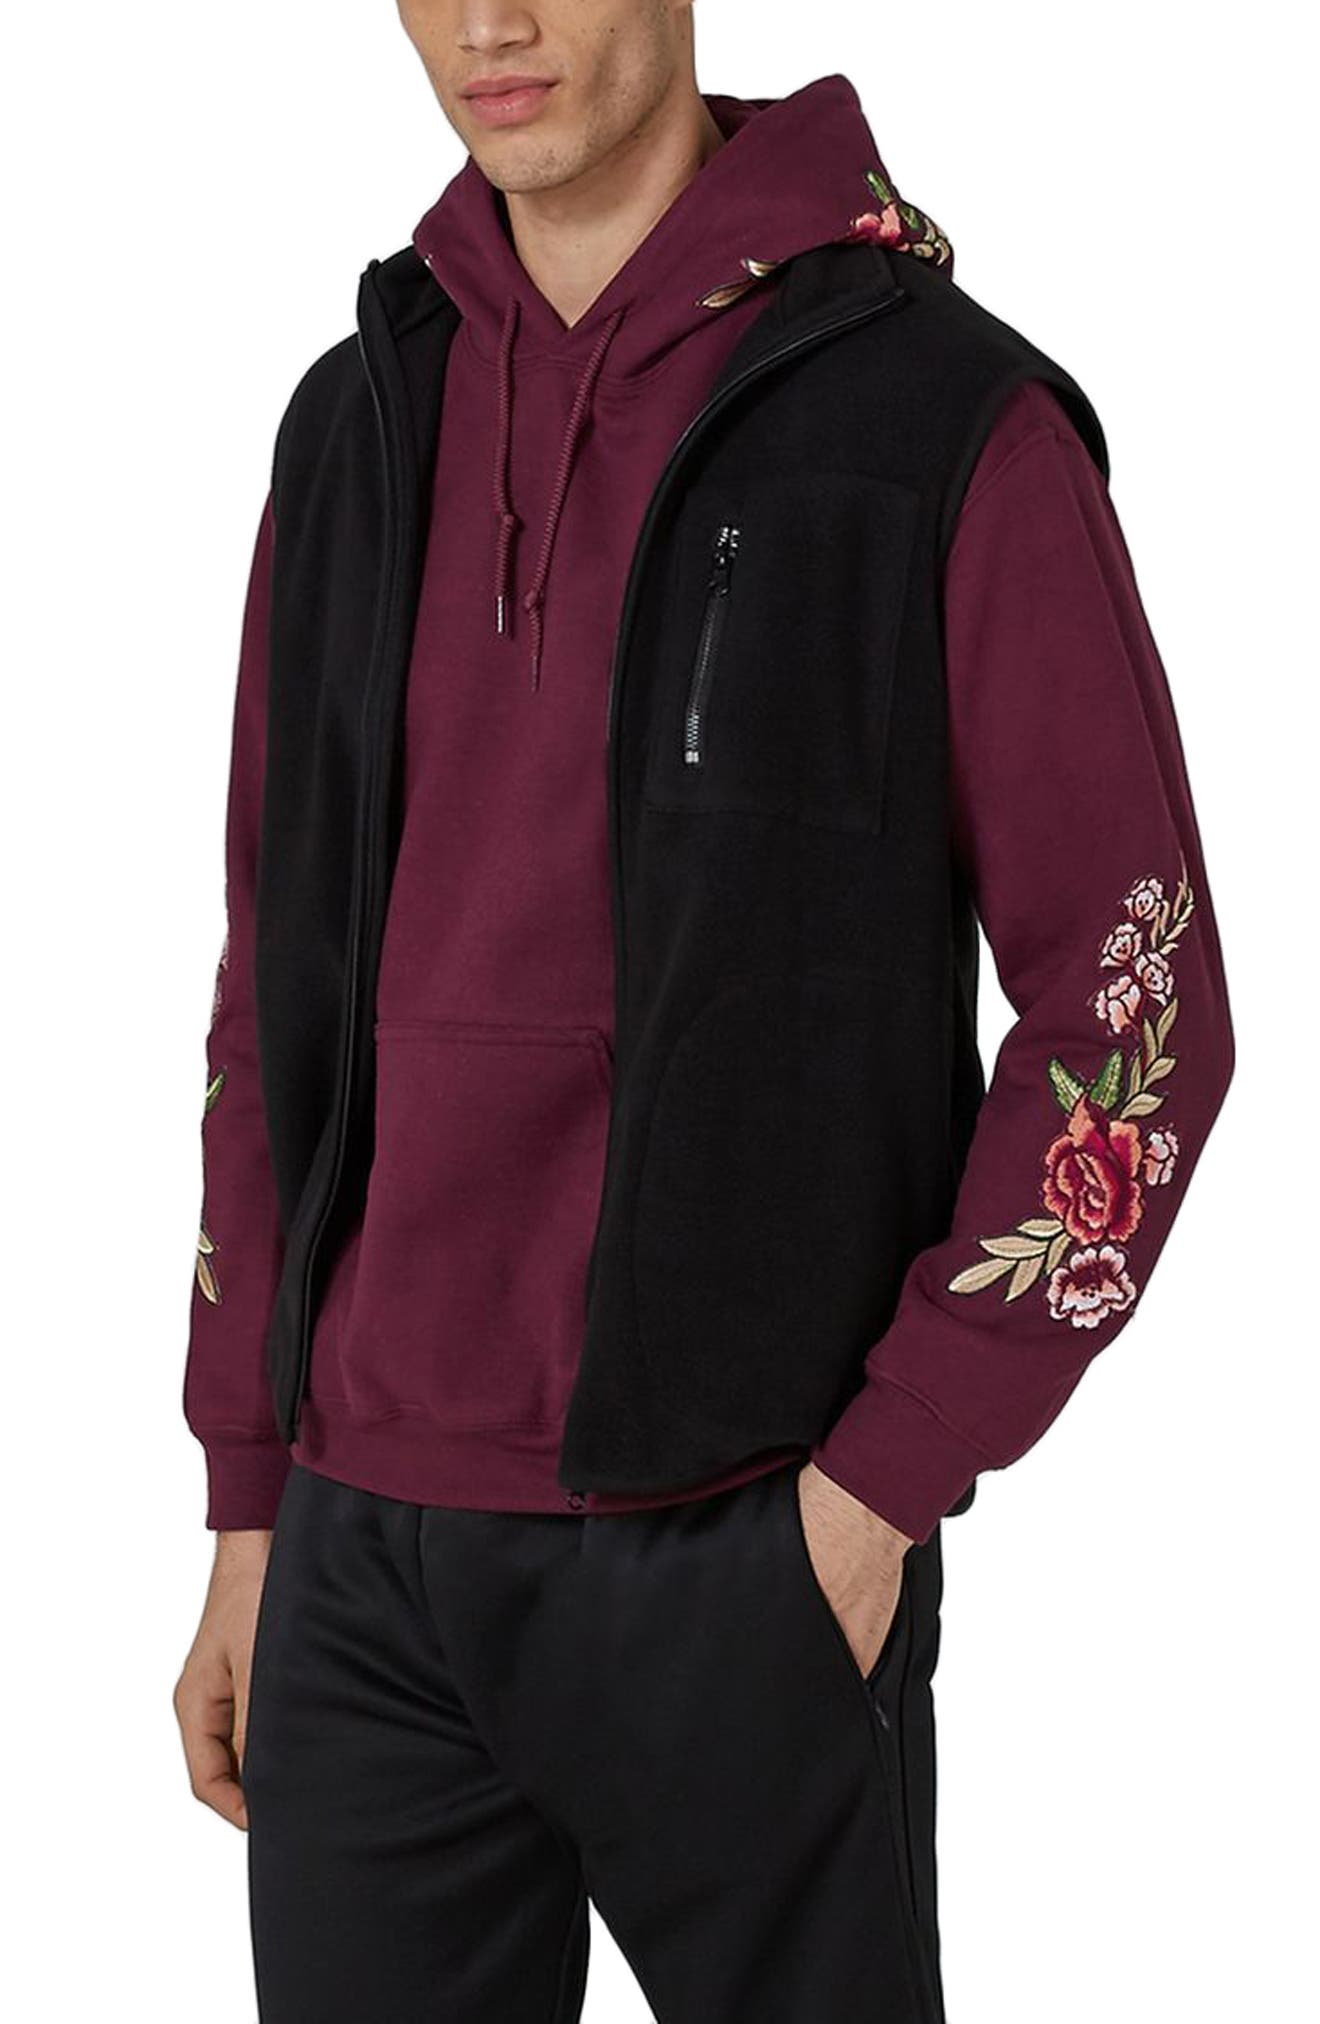 Rose Embroidered Hoodie,                             Main thumbnail 1, color,                             Burgundy Multi